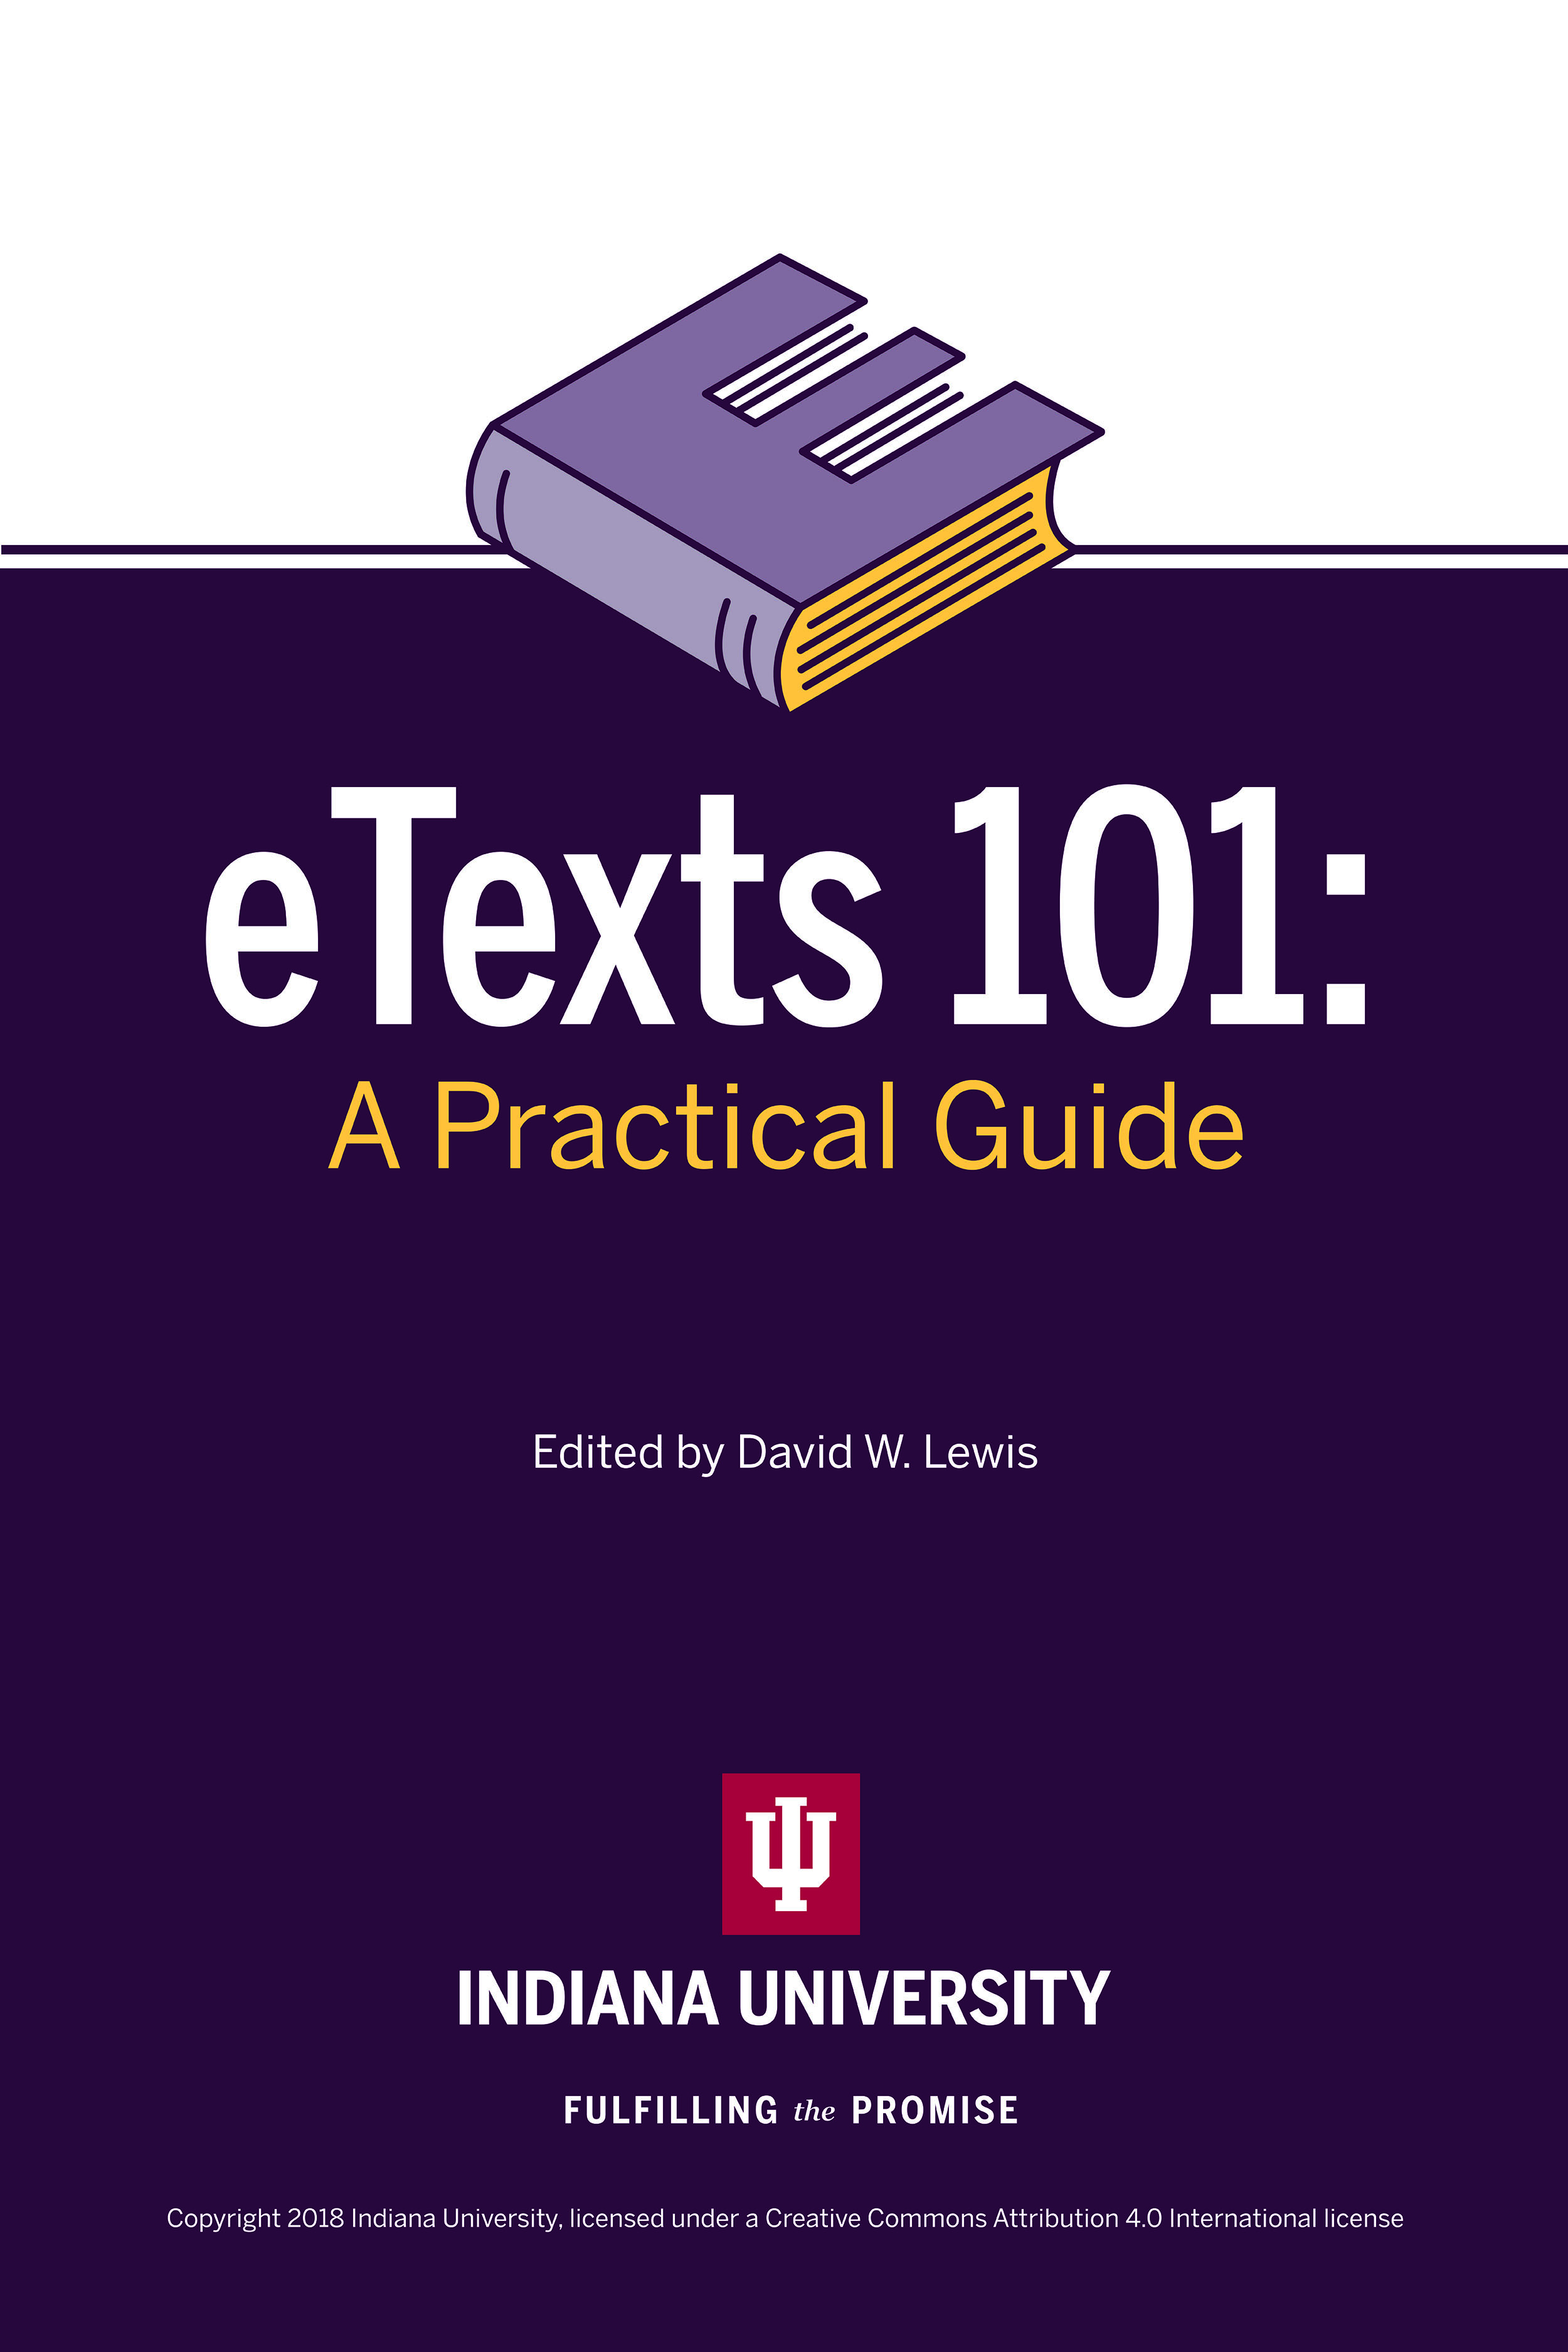 eTexts 101: A Practical Guide